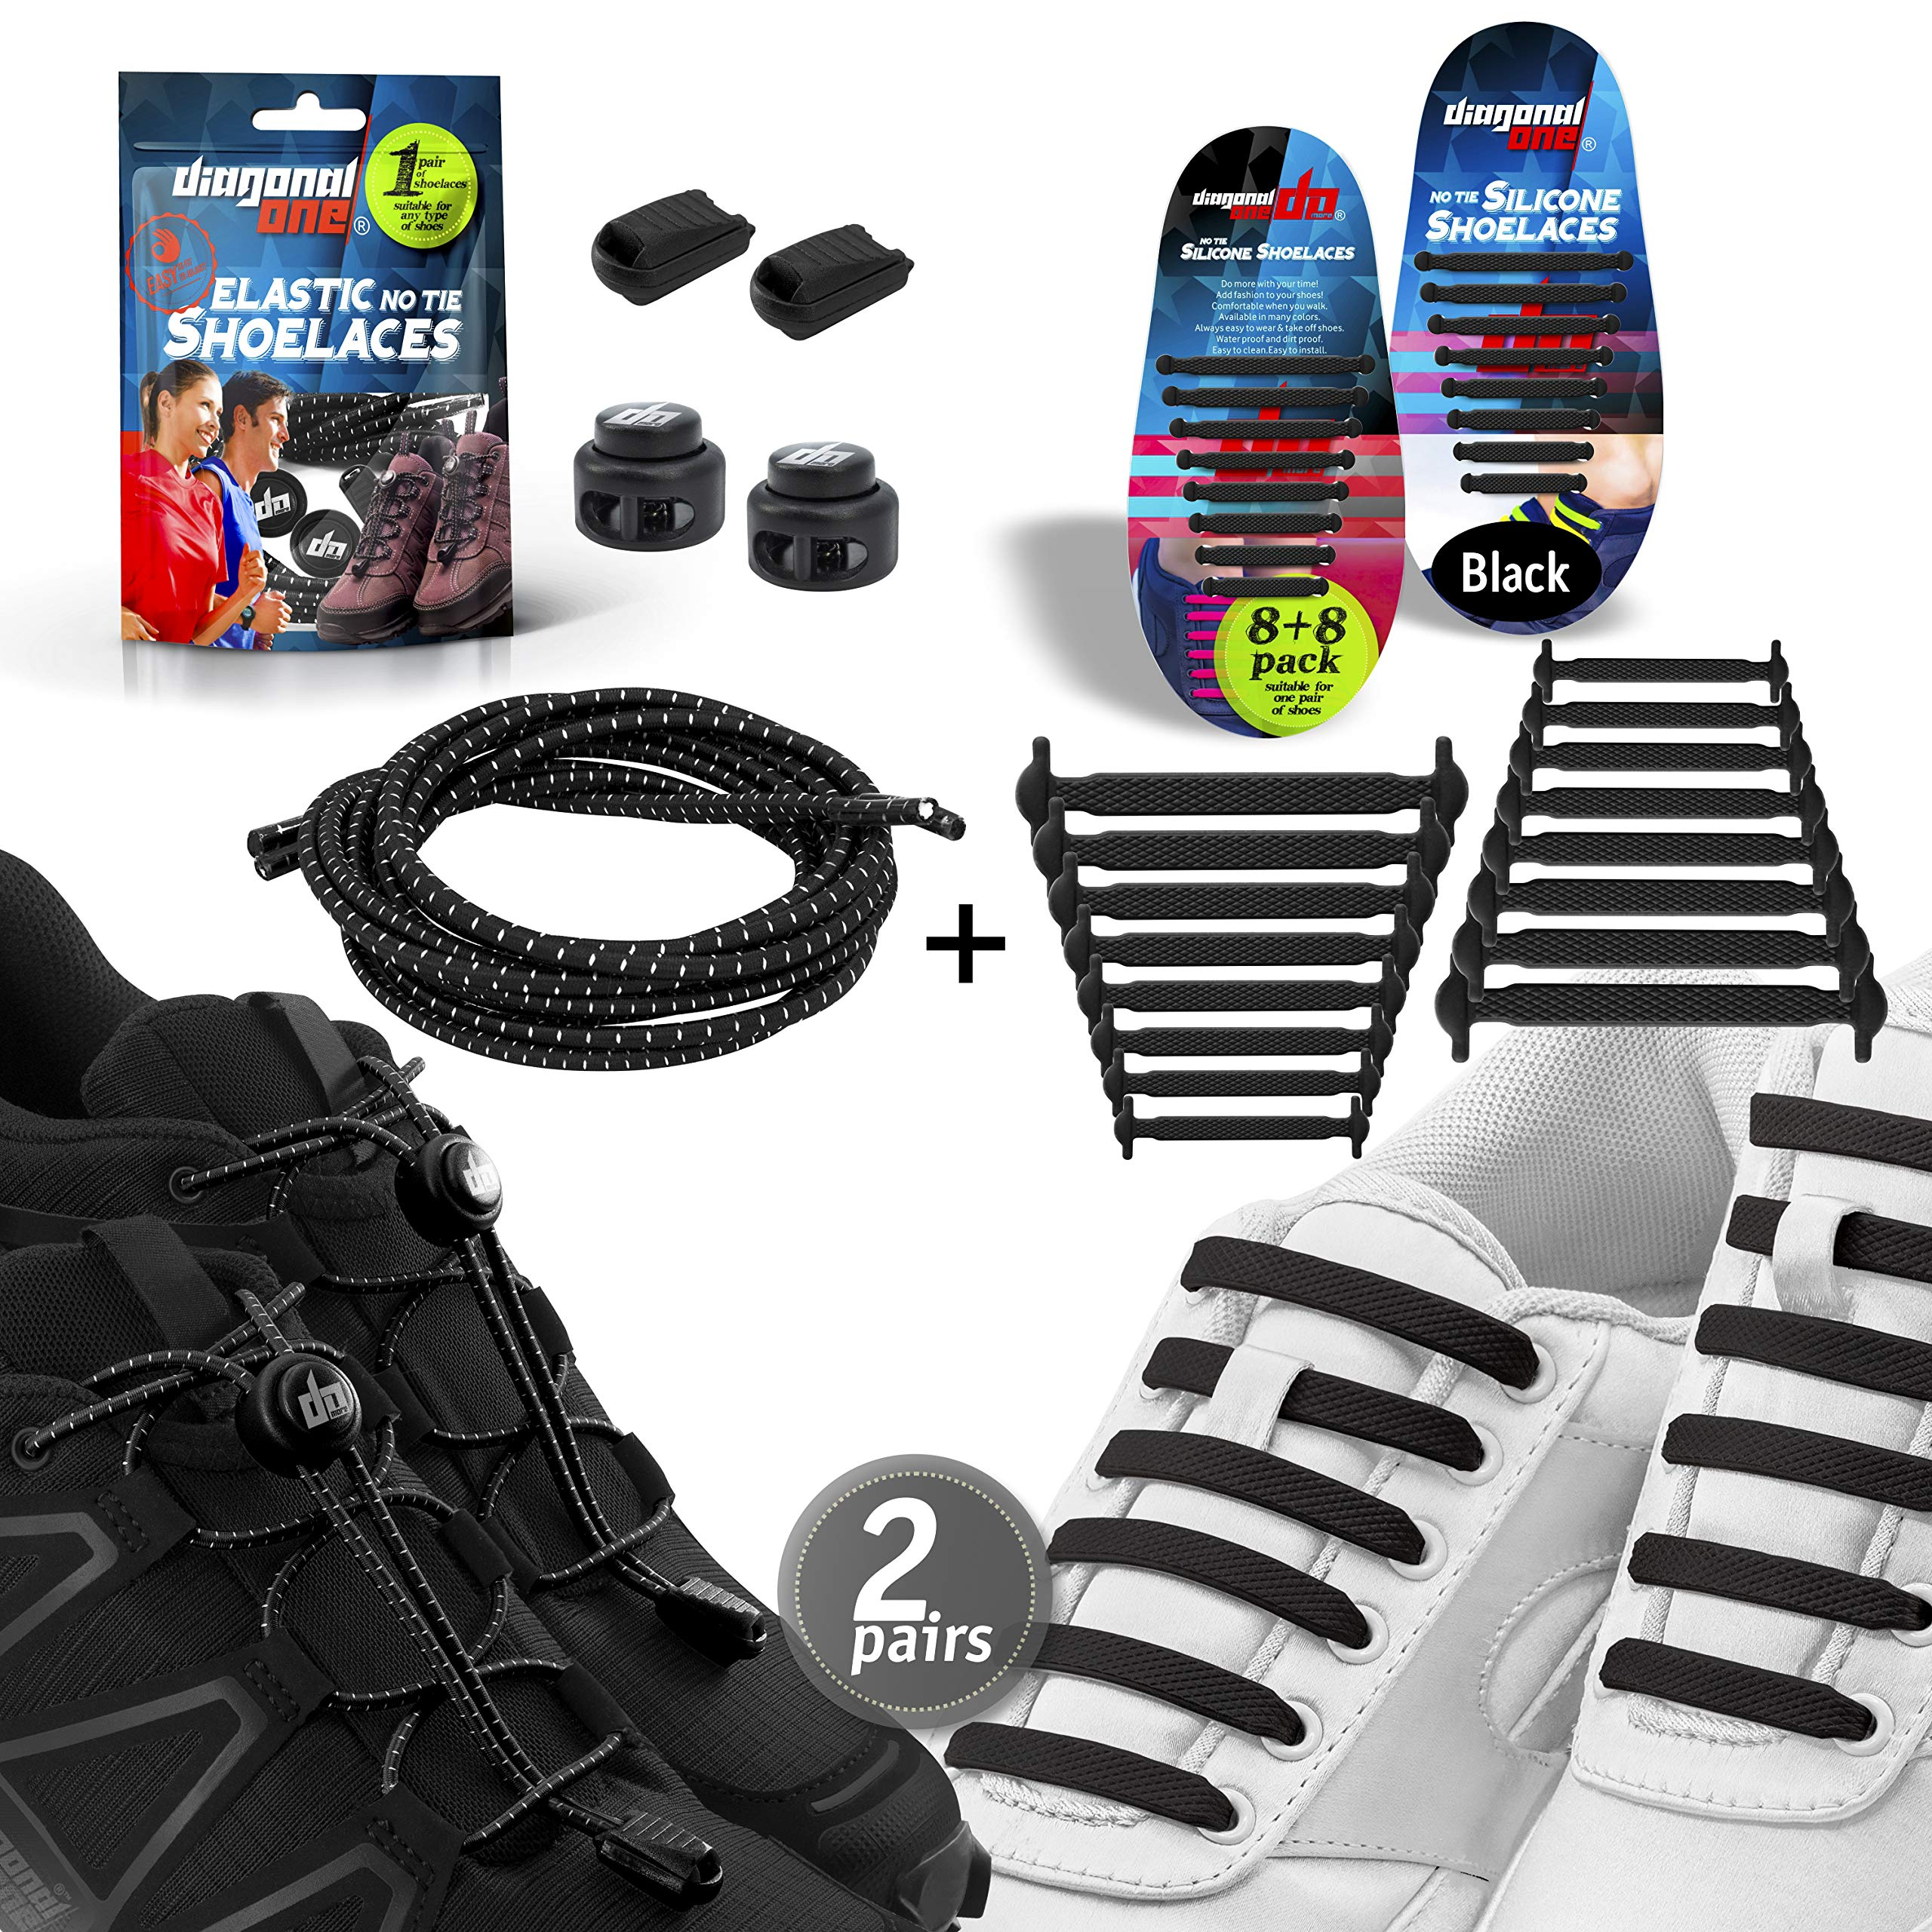 43d669f1610 Diagonal One No Tie Shoelaces – 2 Pack. Slip On Tieless Elastic Silicone  Shoe Laces